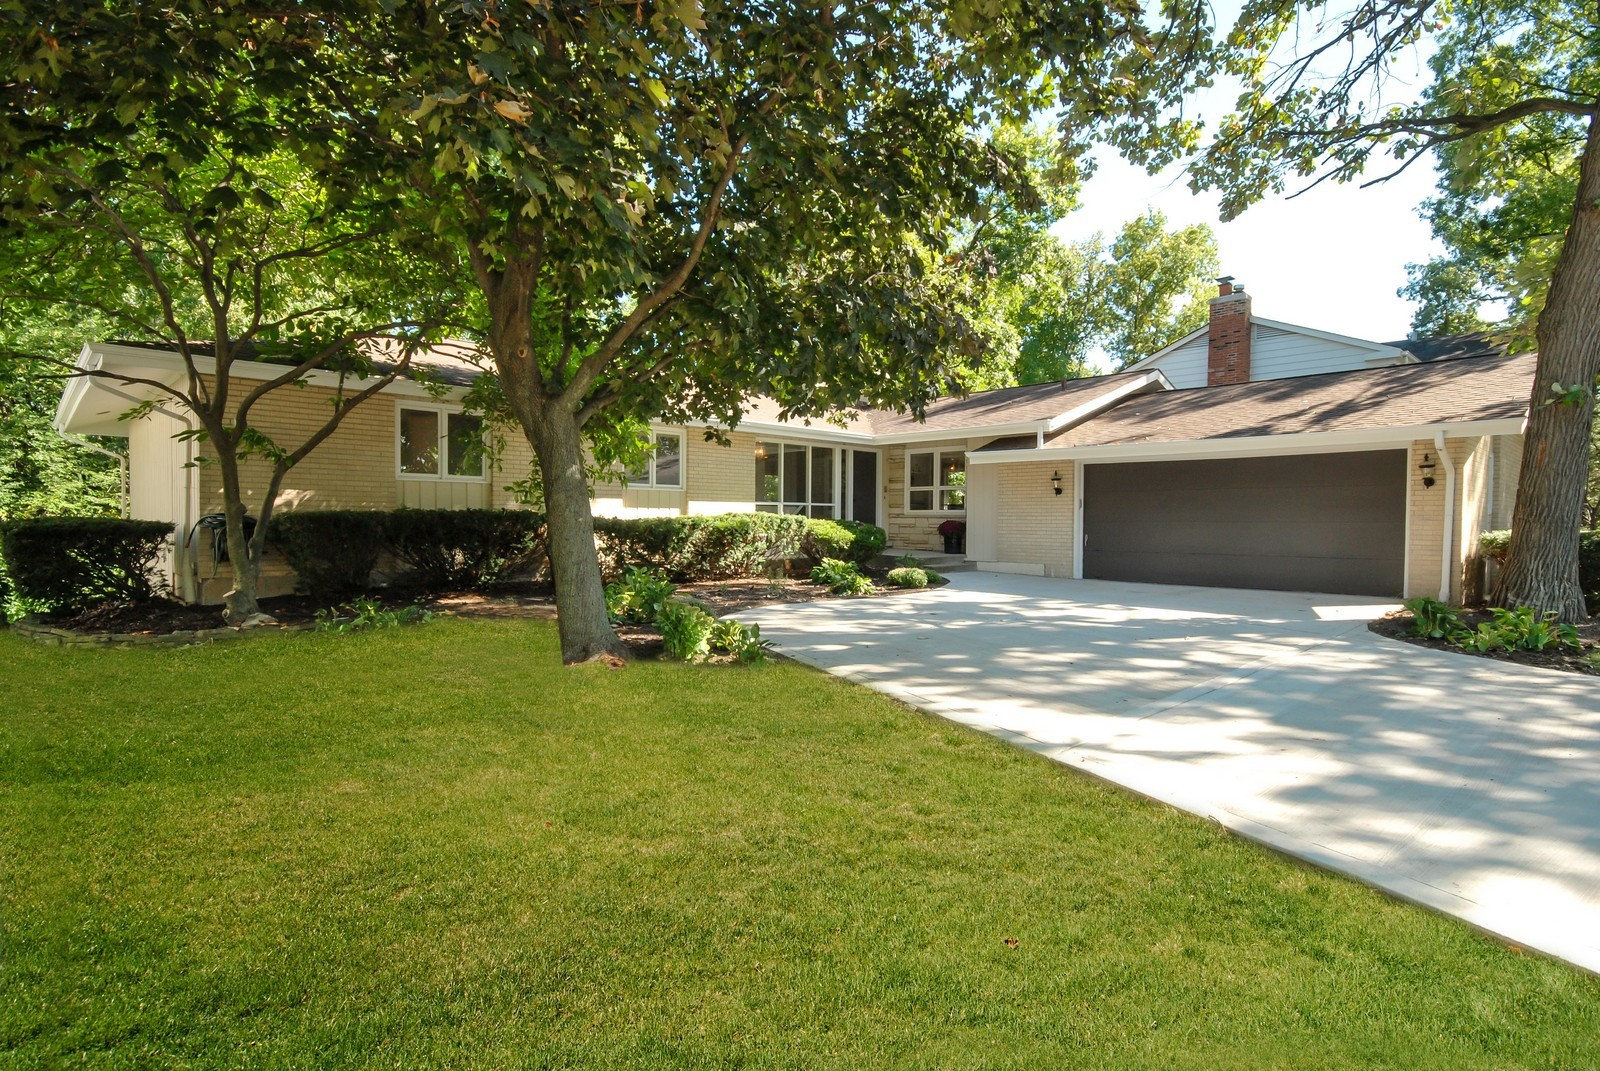 Real Estate Photography - 3661 Saratoga, Downers Grove, IL, 60515 - Front View